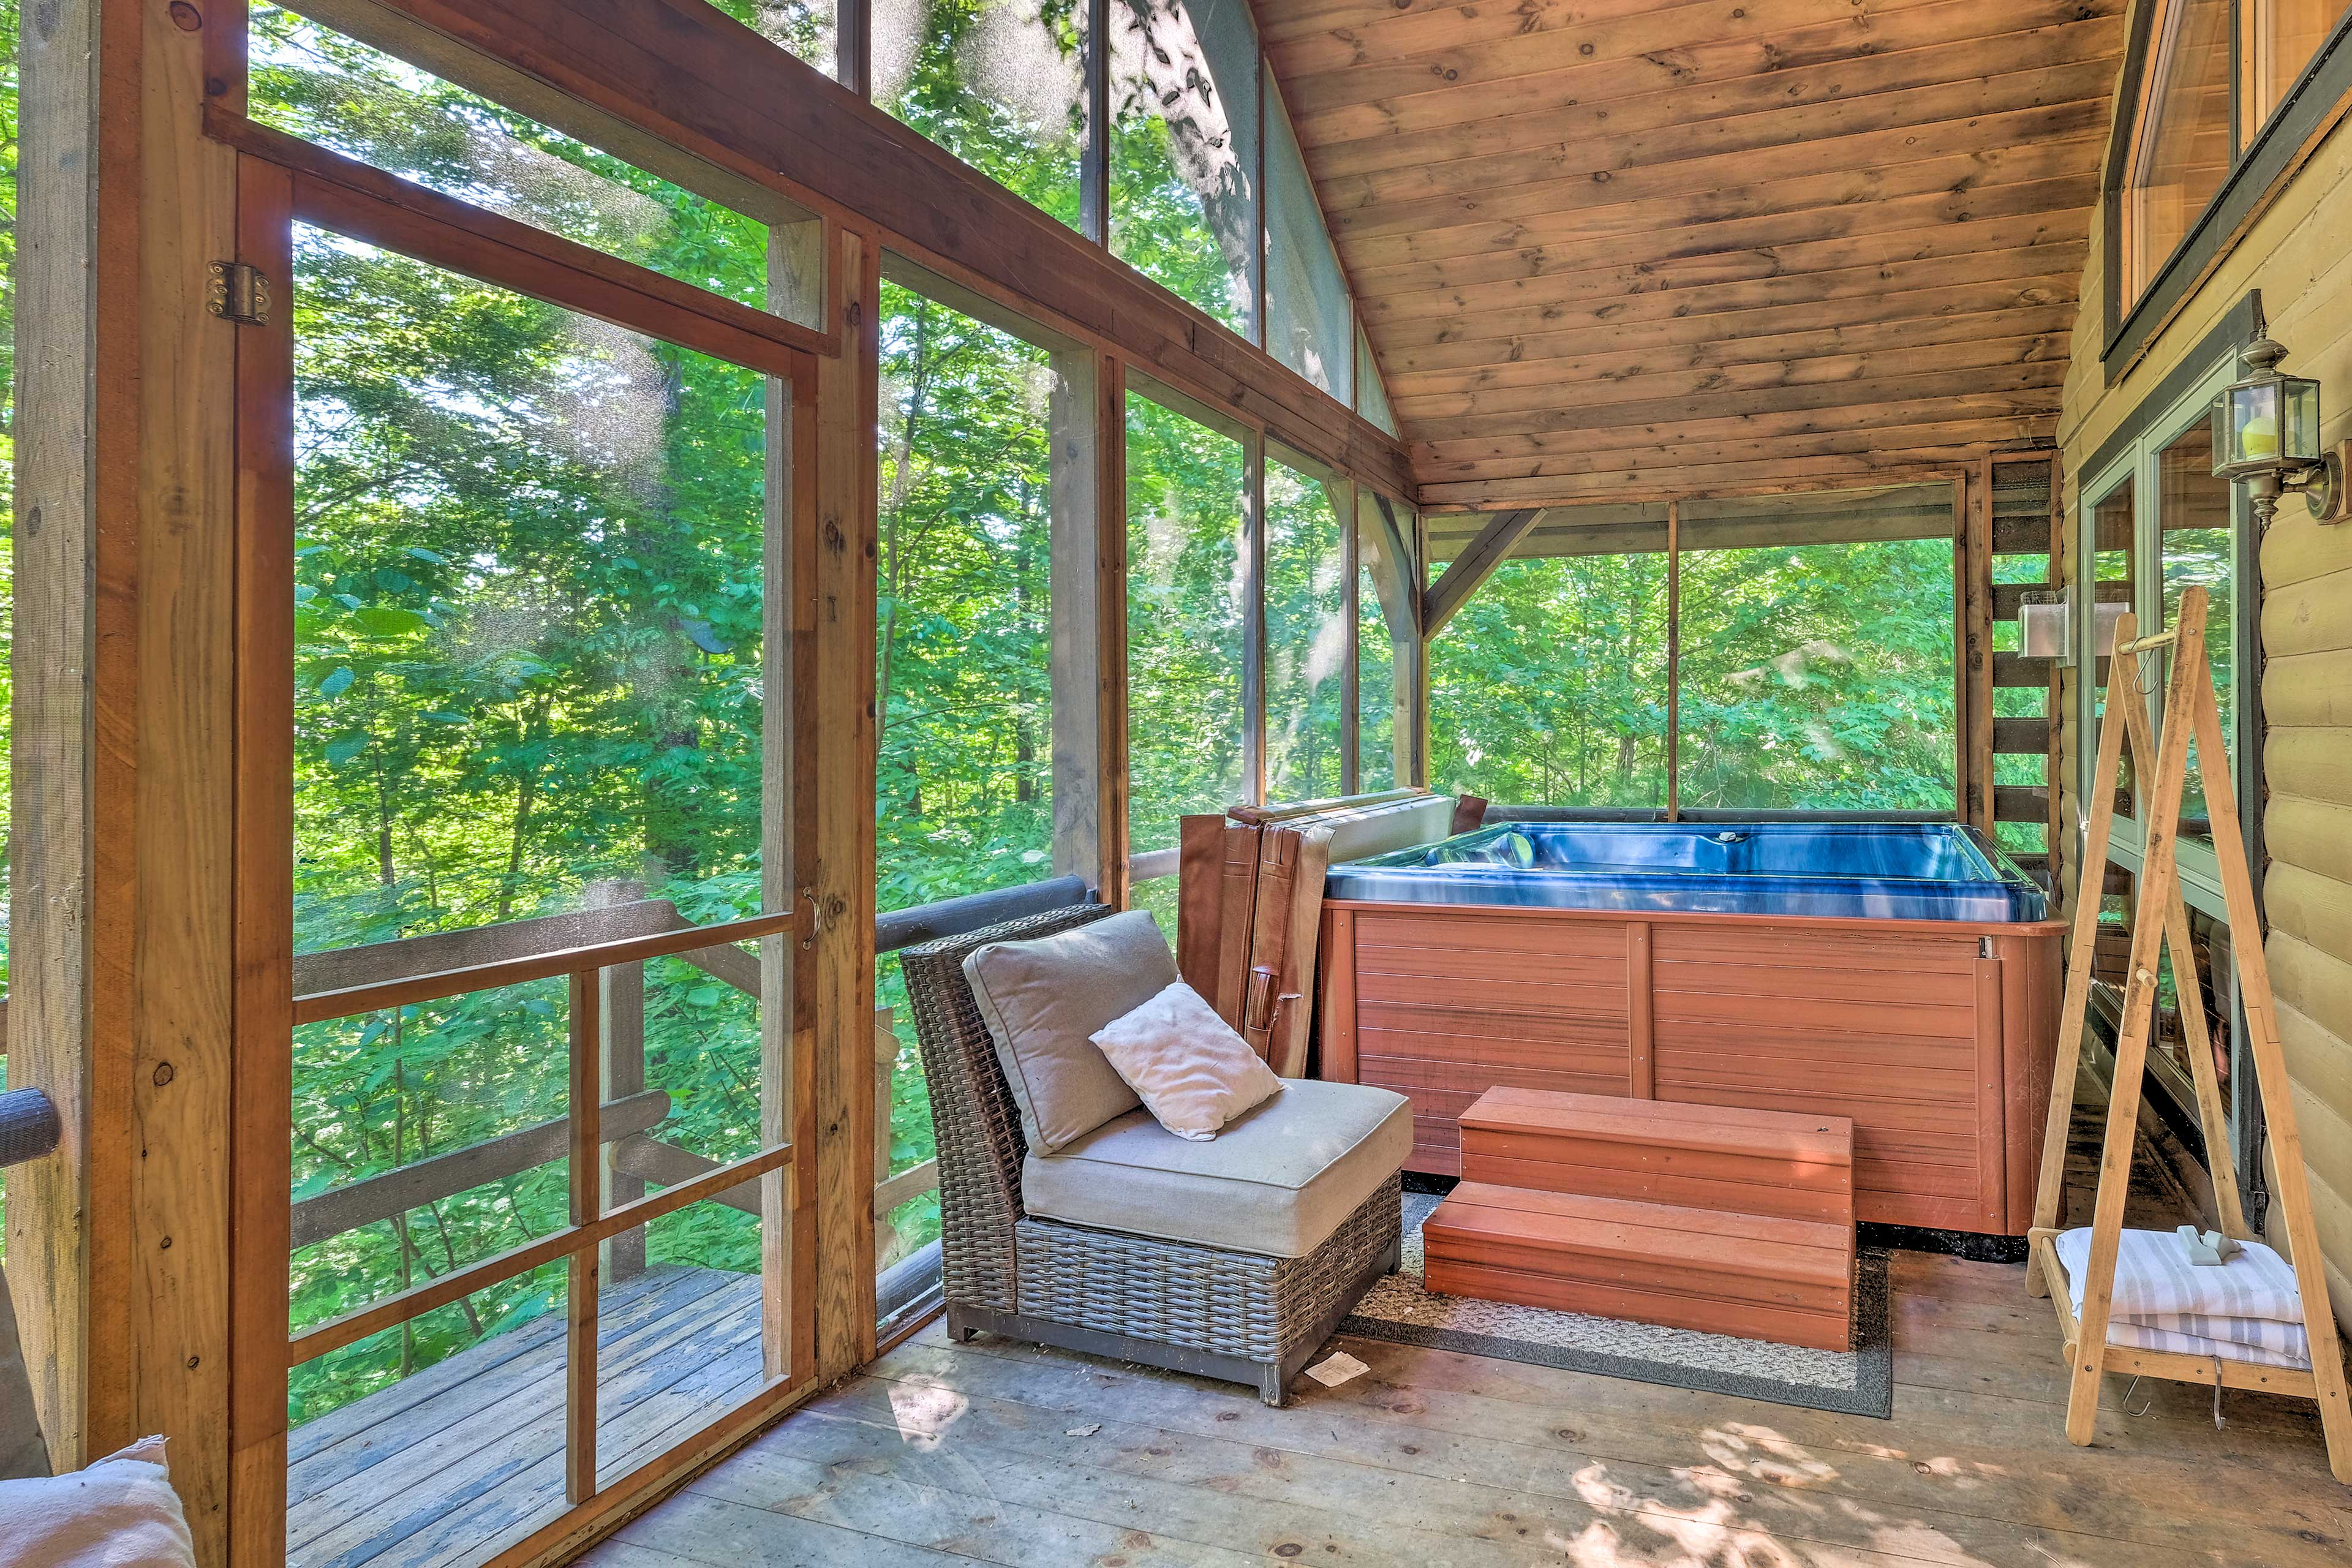 Soak in the hot tub to soothe sore muscles after hiking all day.